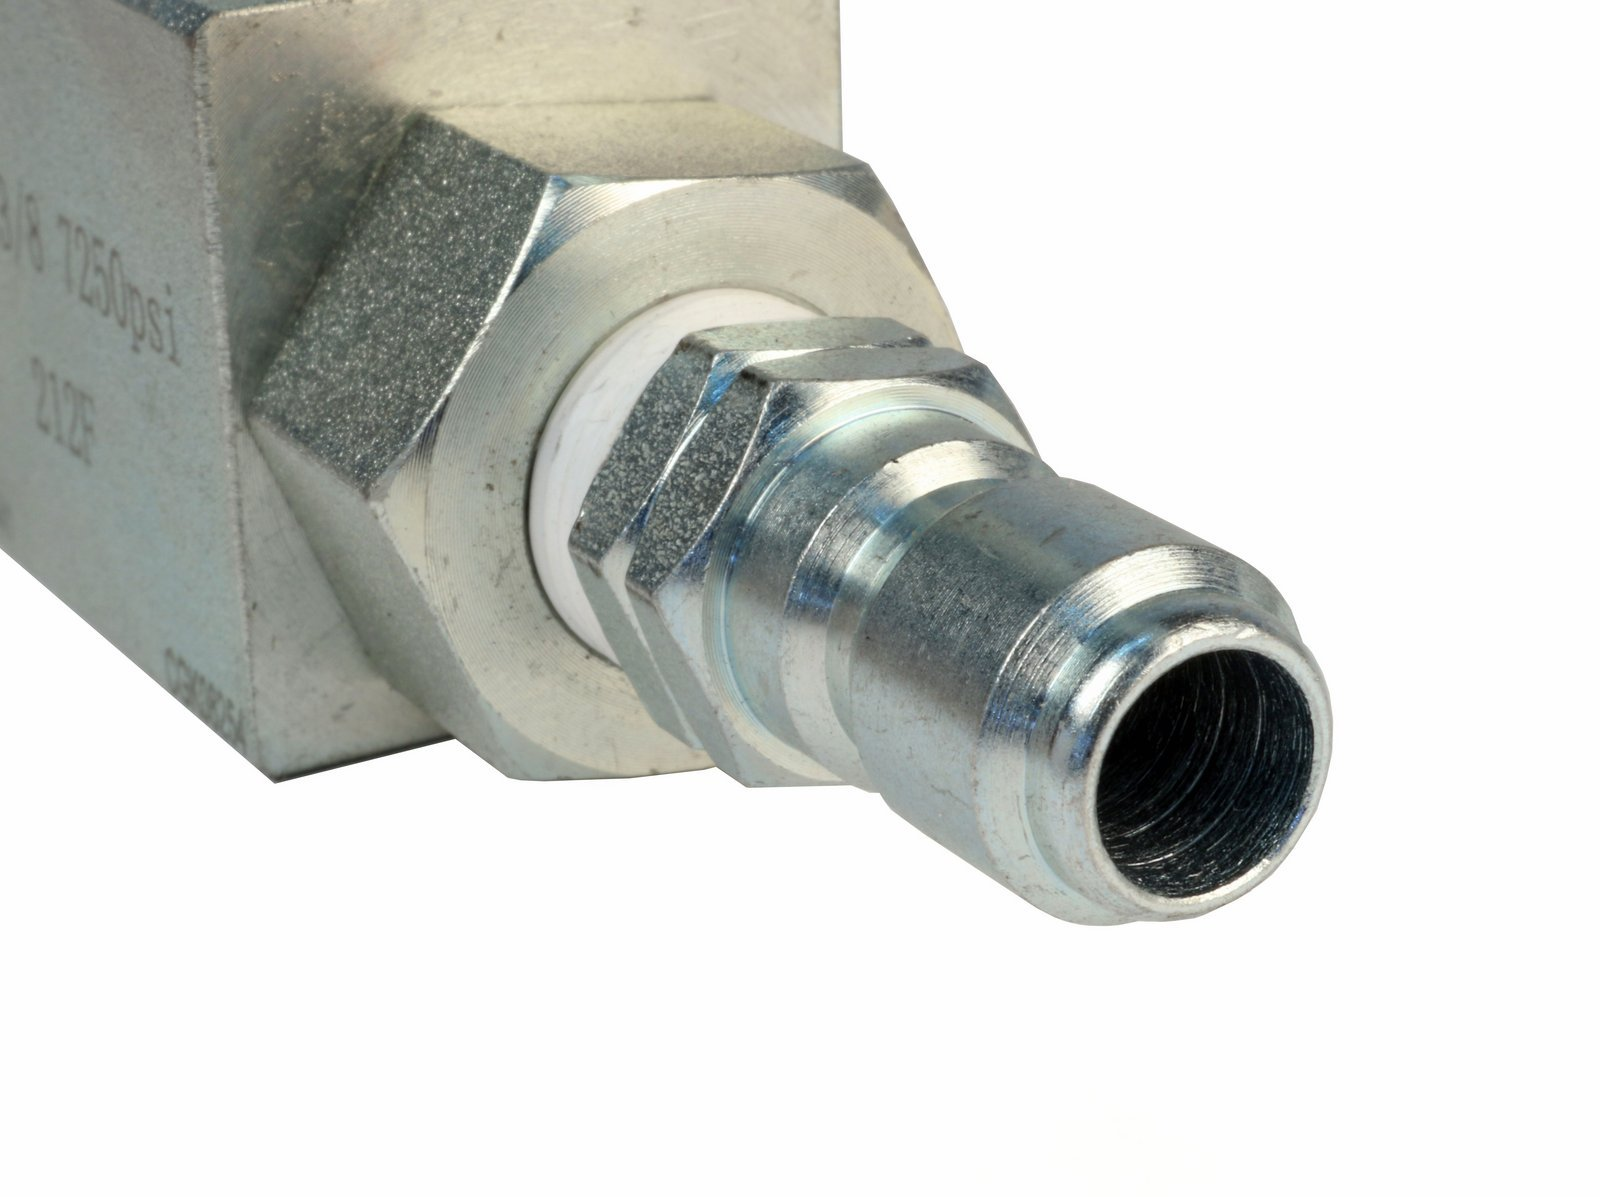 High Pressure Ball Valve Kit 3/8'' Male Plug X 3/8'' Female Quick Connect 4000PSI for High Pressure Hoses by Raptor Blast (Image #4)